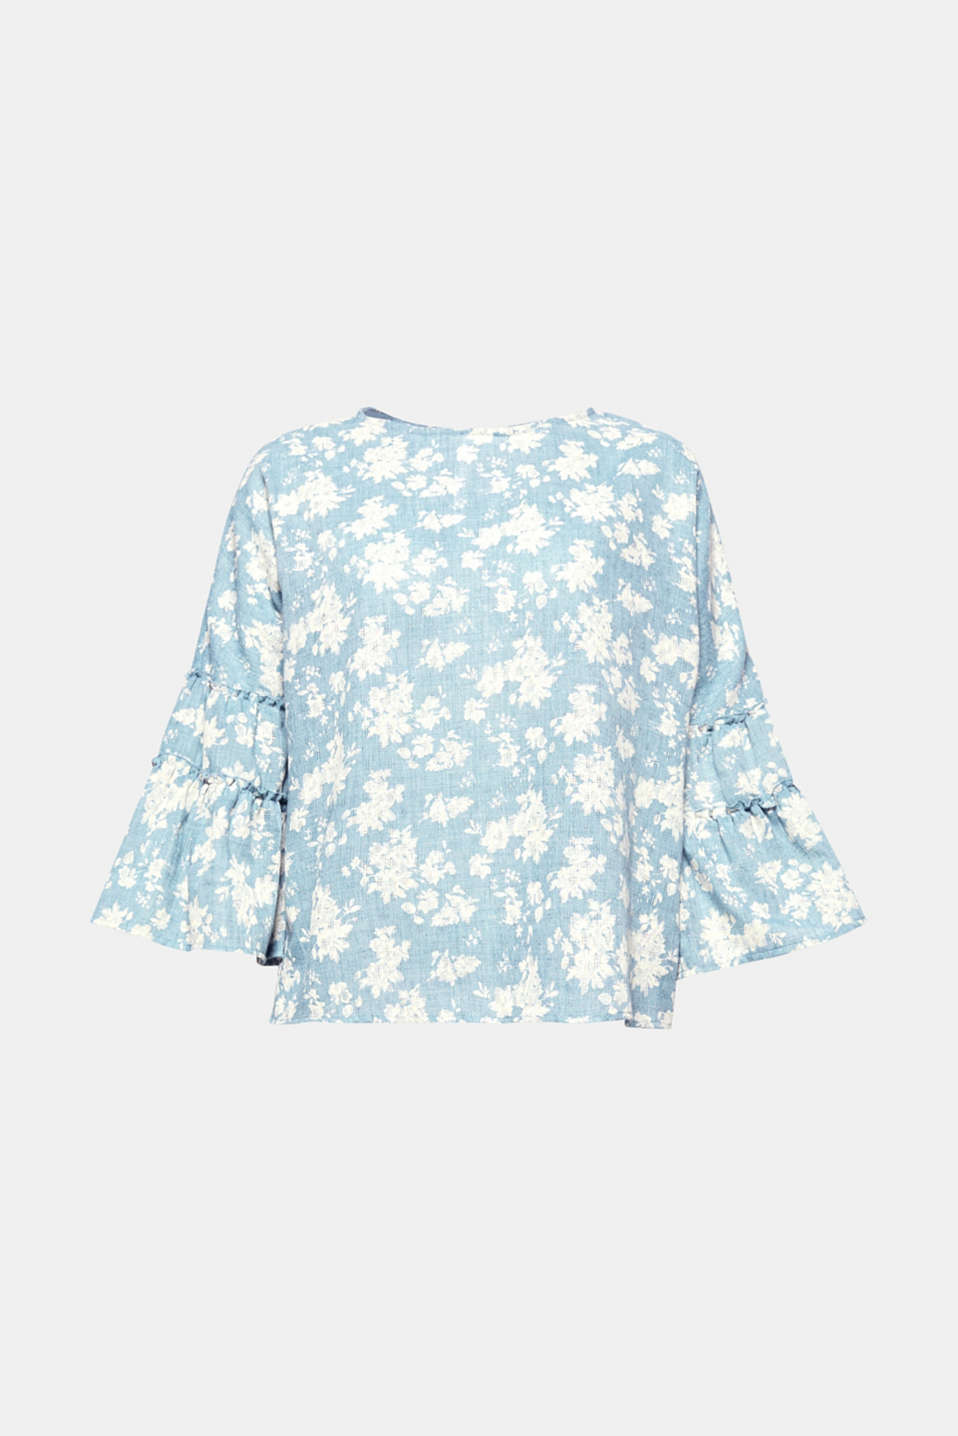 This blouse exudes pure romance with a light and airy textured pattern, a delicate floral print and three-quarter length flounce sleeves!